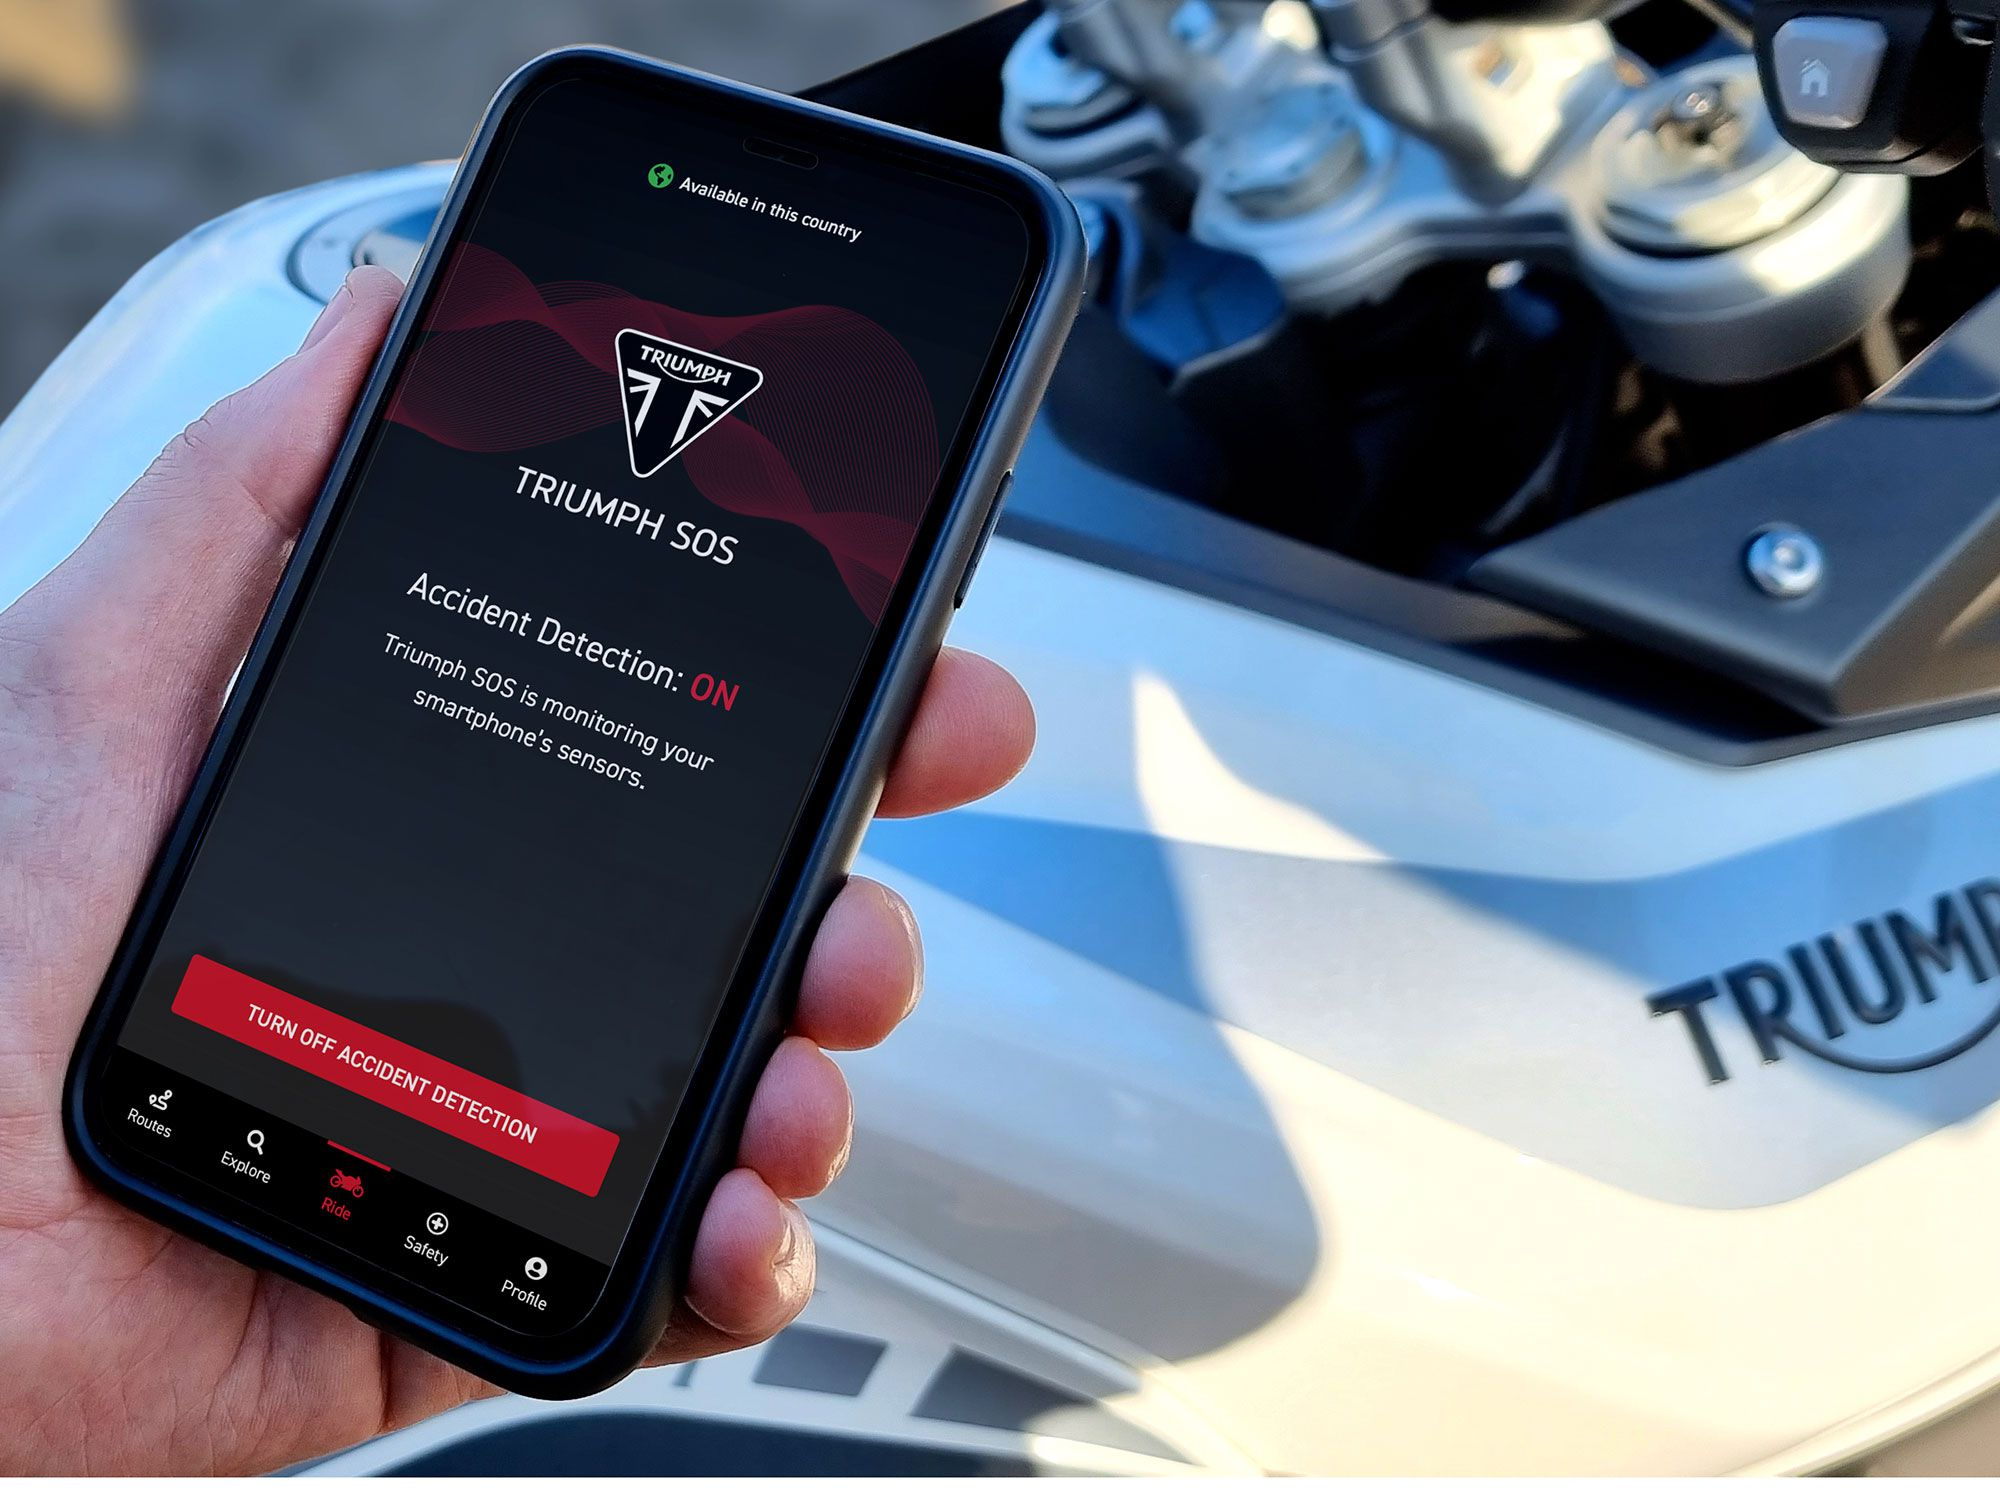 Triumph SOS uses your smartphone to detect an accident and notify emergency responders. It's out now for iOS and Android users.